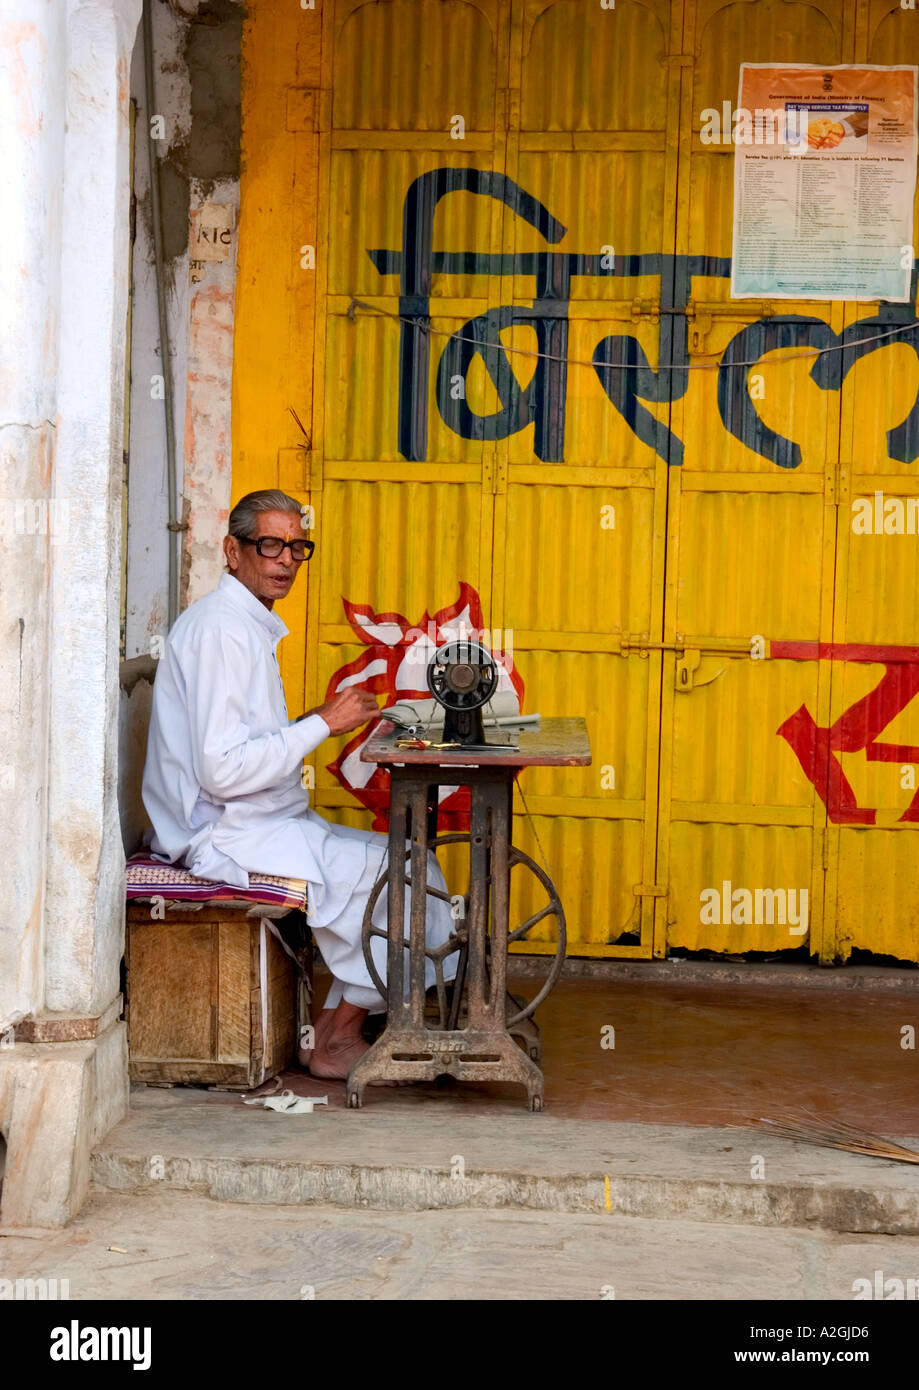 Tailor working at sewing machine rural India Stock Photo, Royalty ...